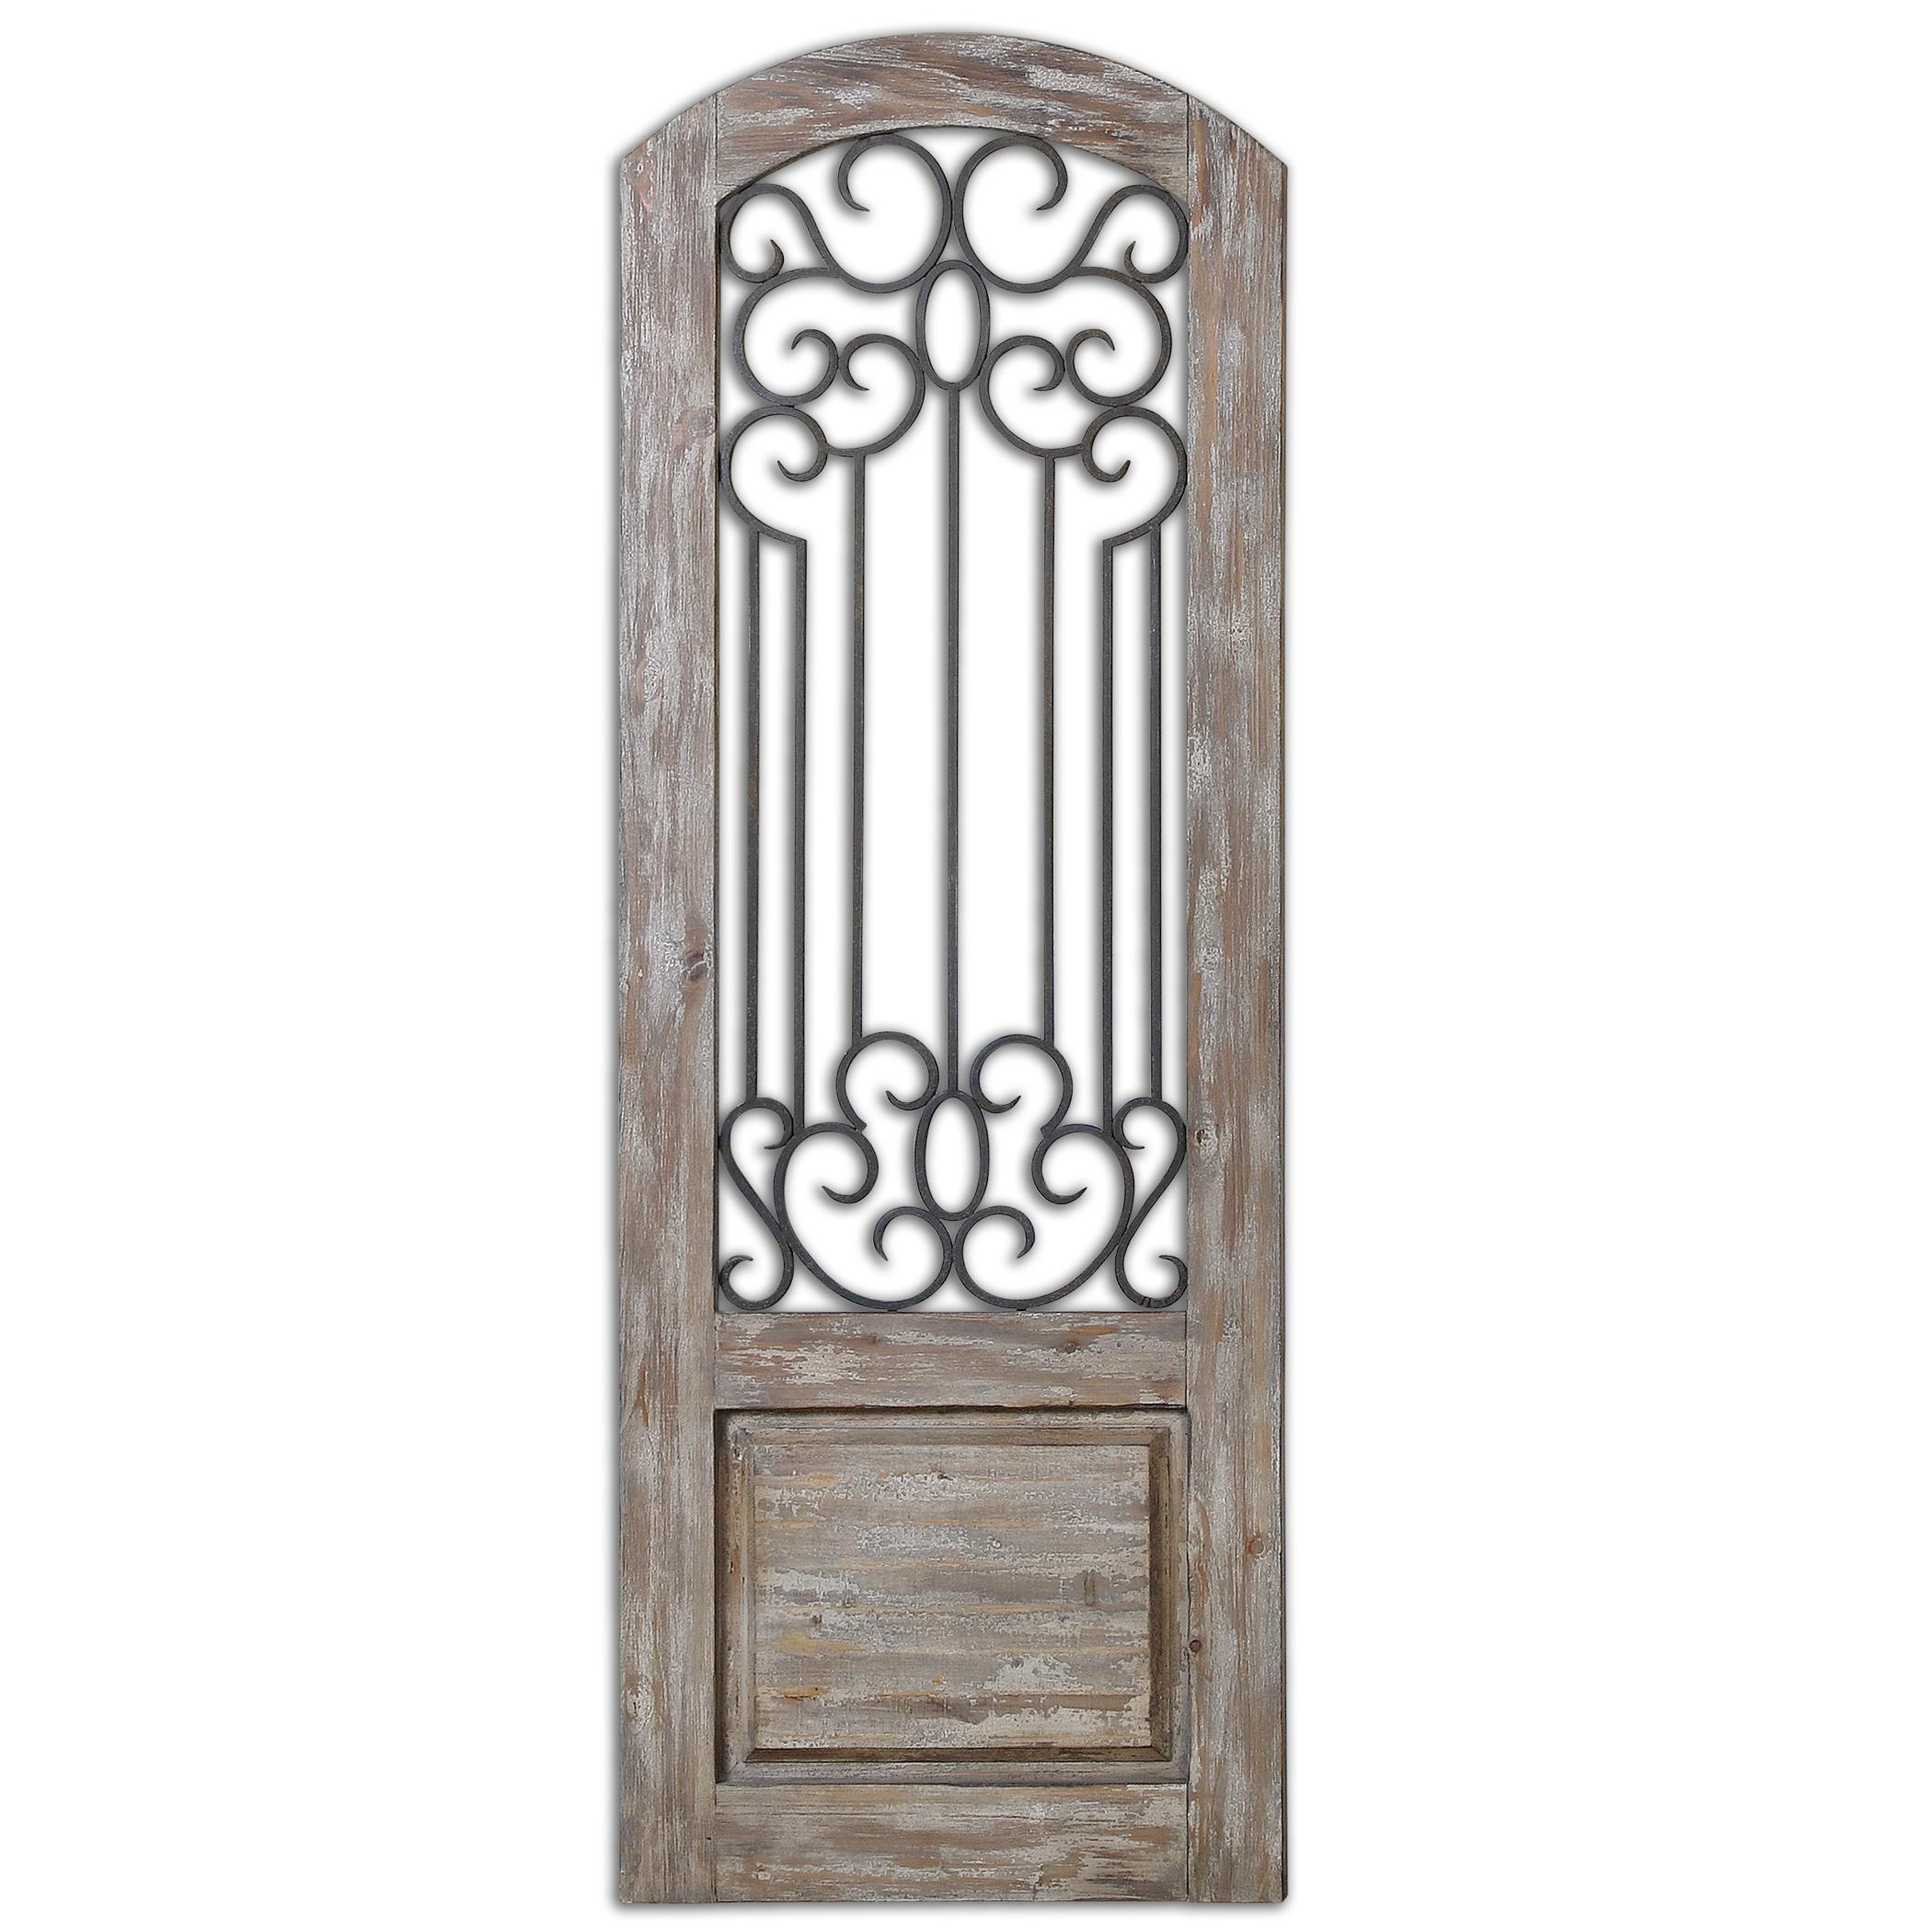 Uttermost Alternative Wall Decor Mulino Distresed Wall Panel - Item Number: 13861